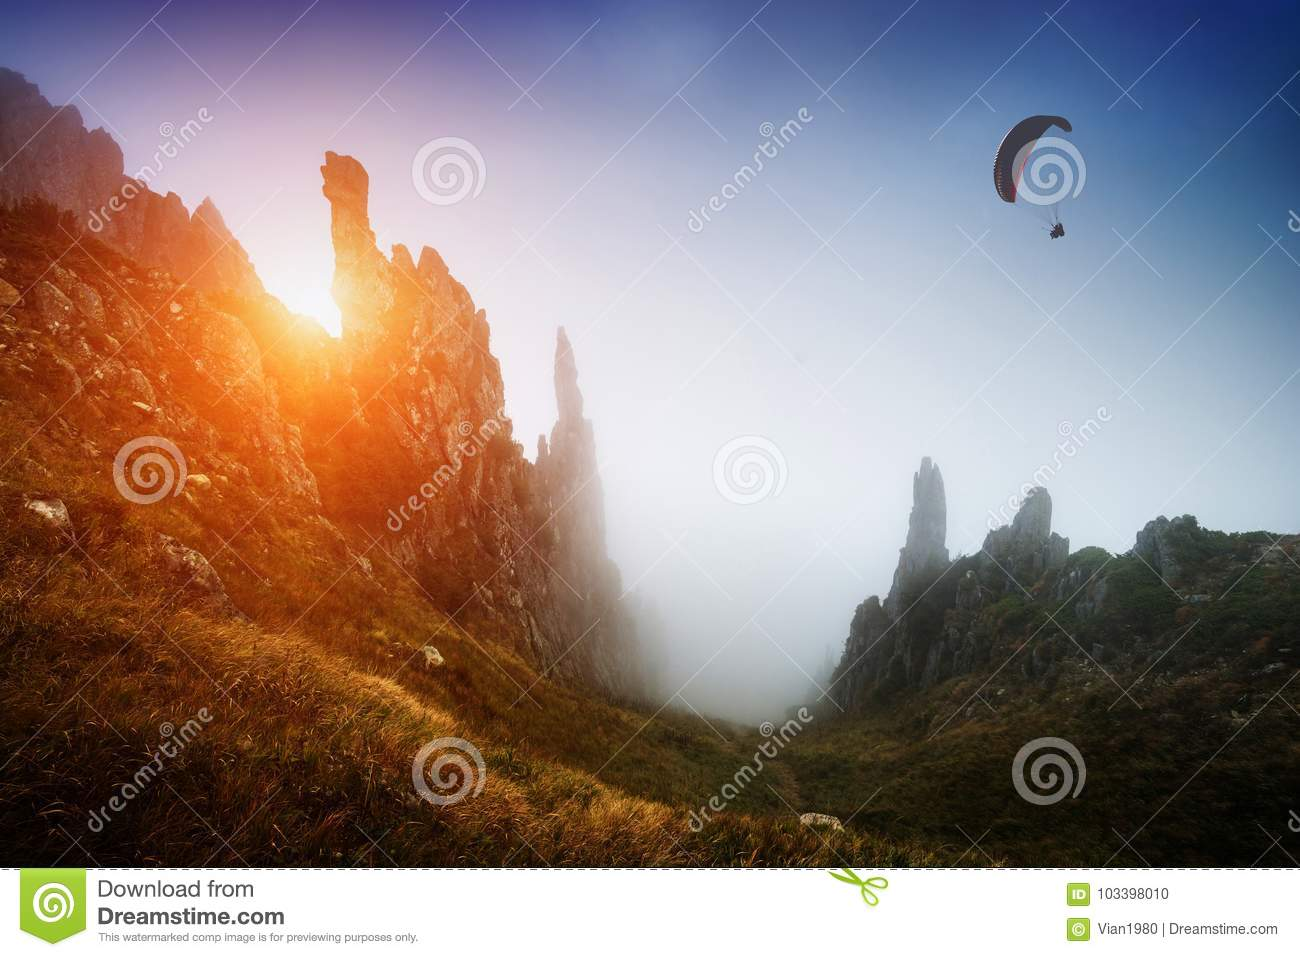 Download Silhouette Of Paraglider Over The Misty Mountain Valley Stock Photo - Image of alps, athlete: 103398010